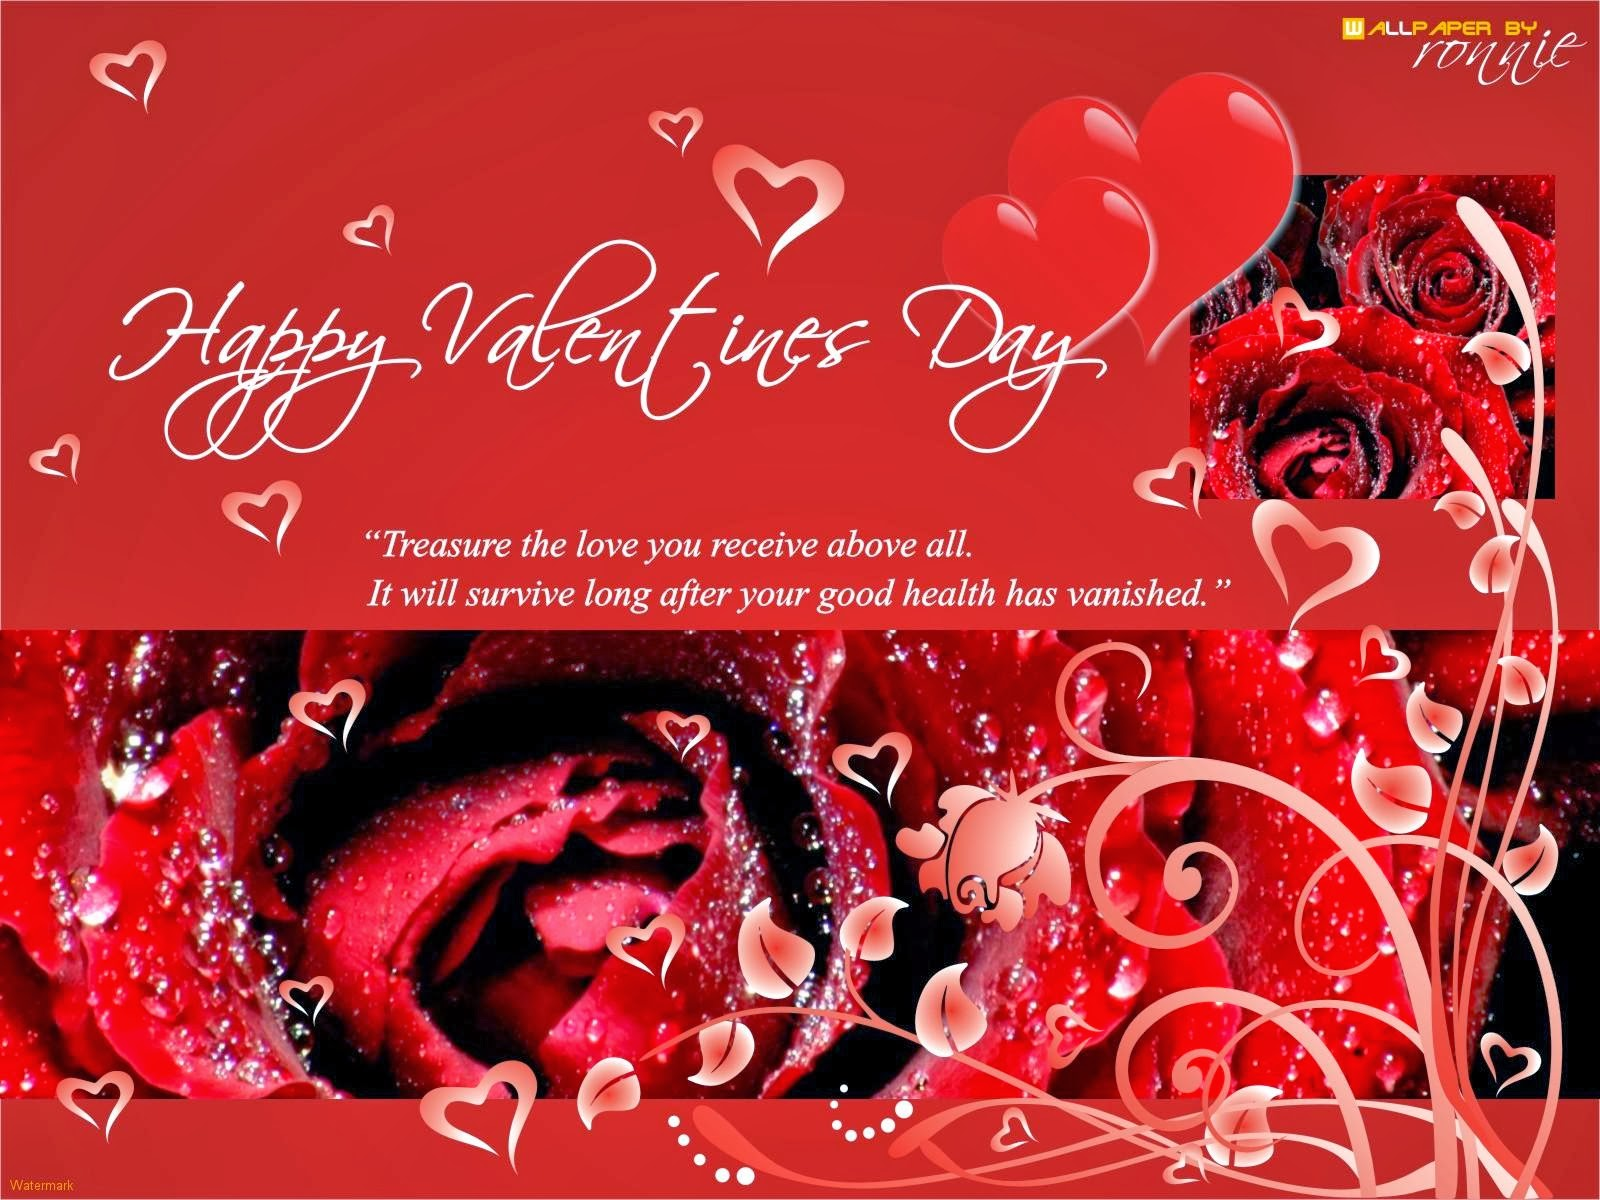 2014 Valentines Day Wallpapers 14 February 2014 Wallpapers